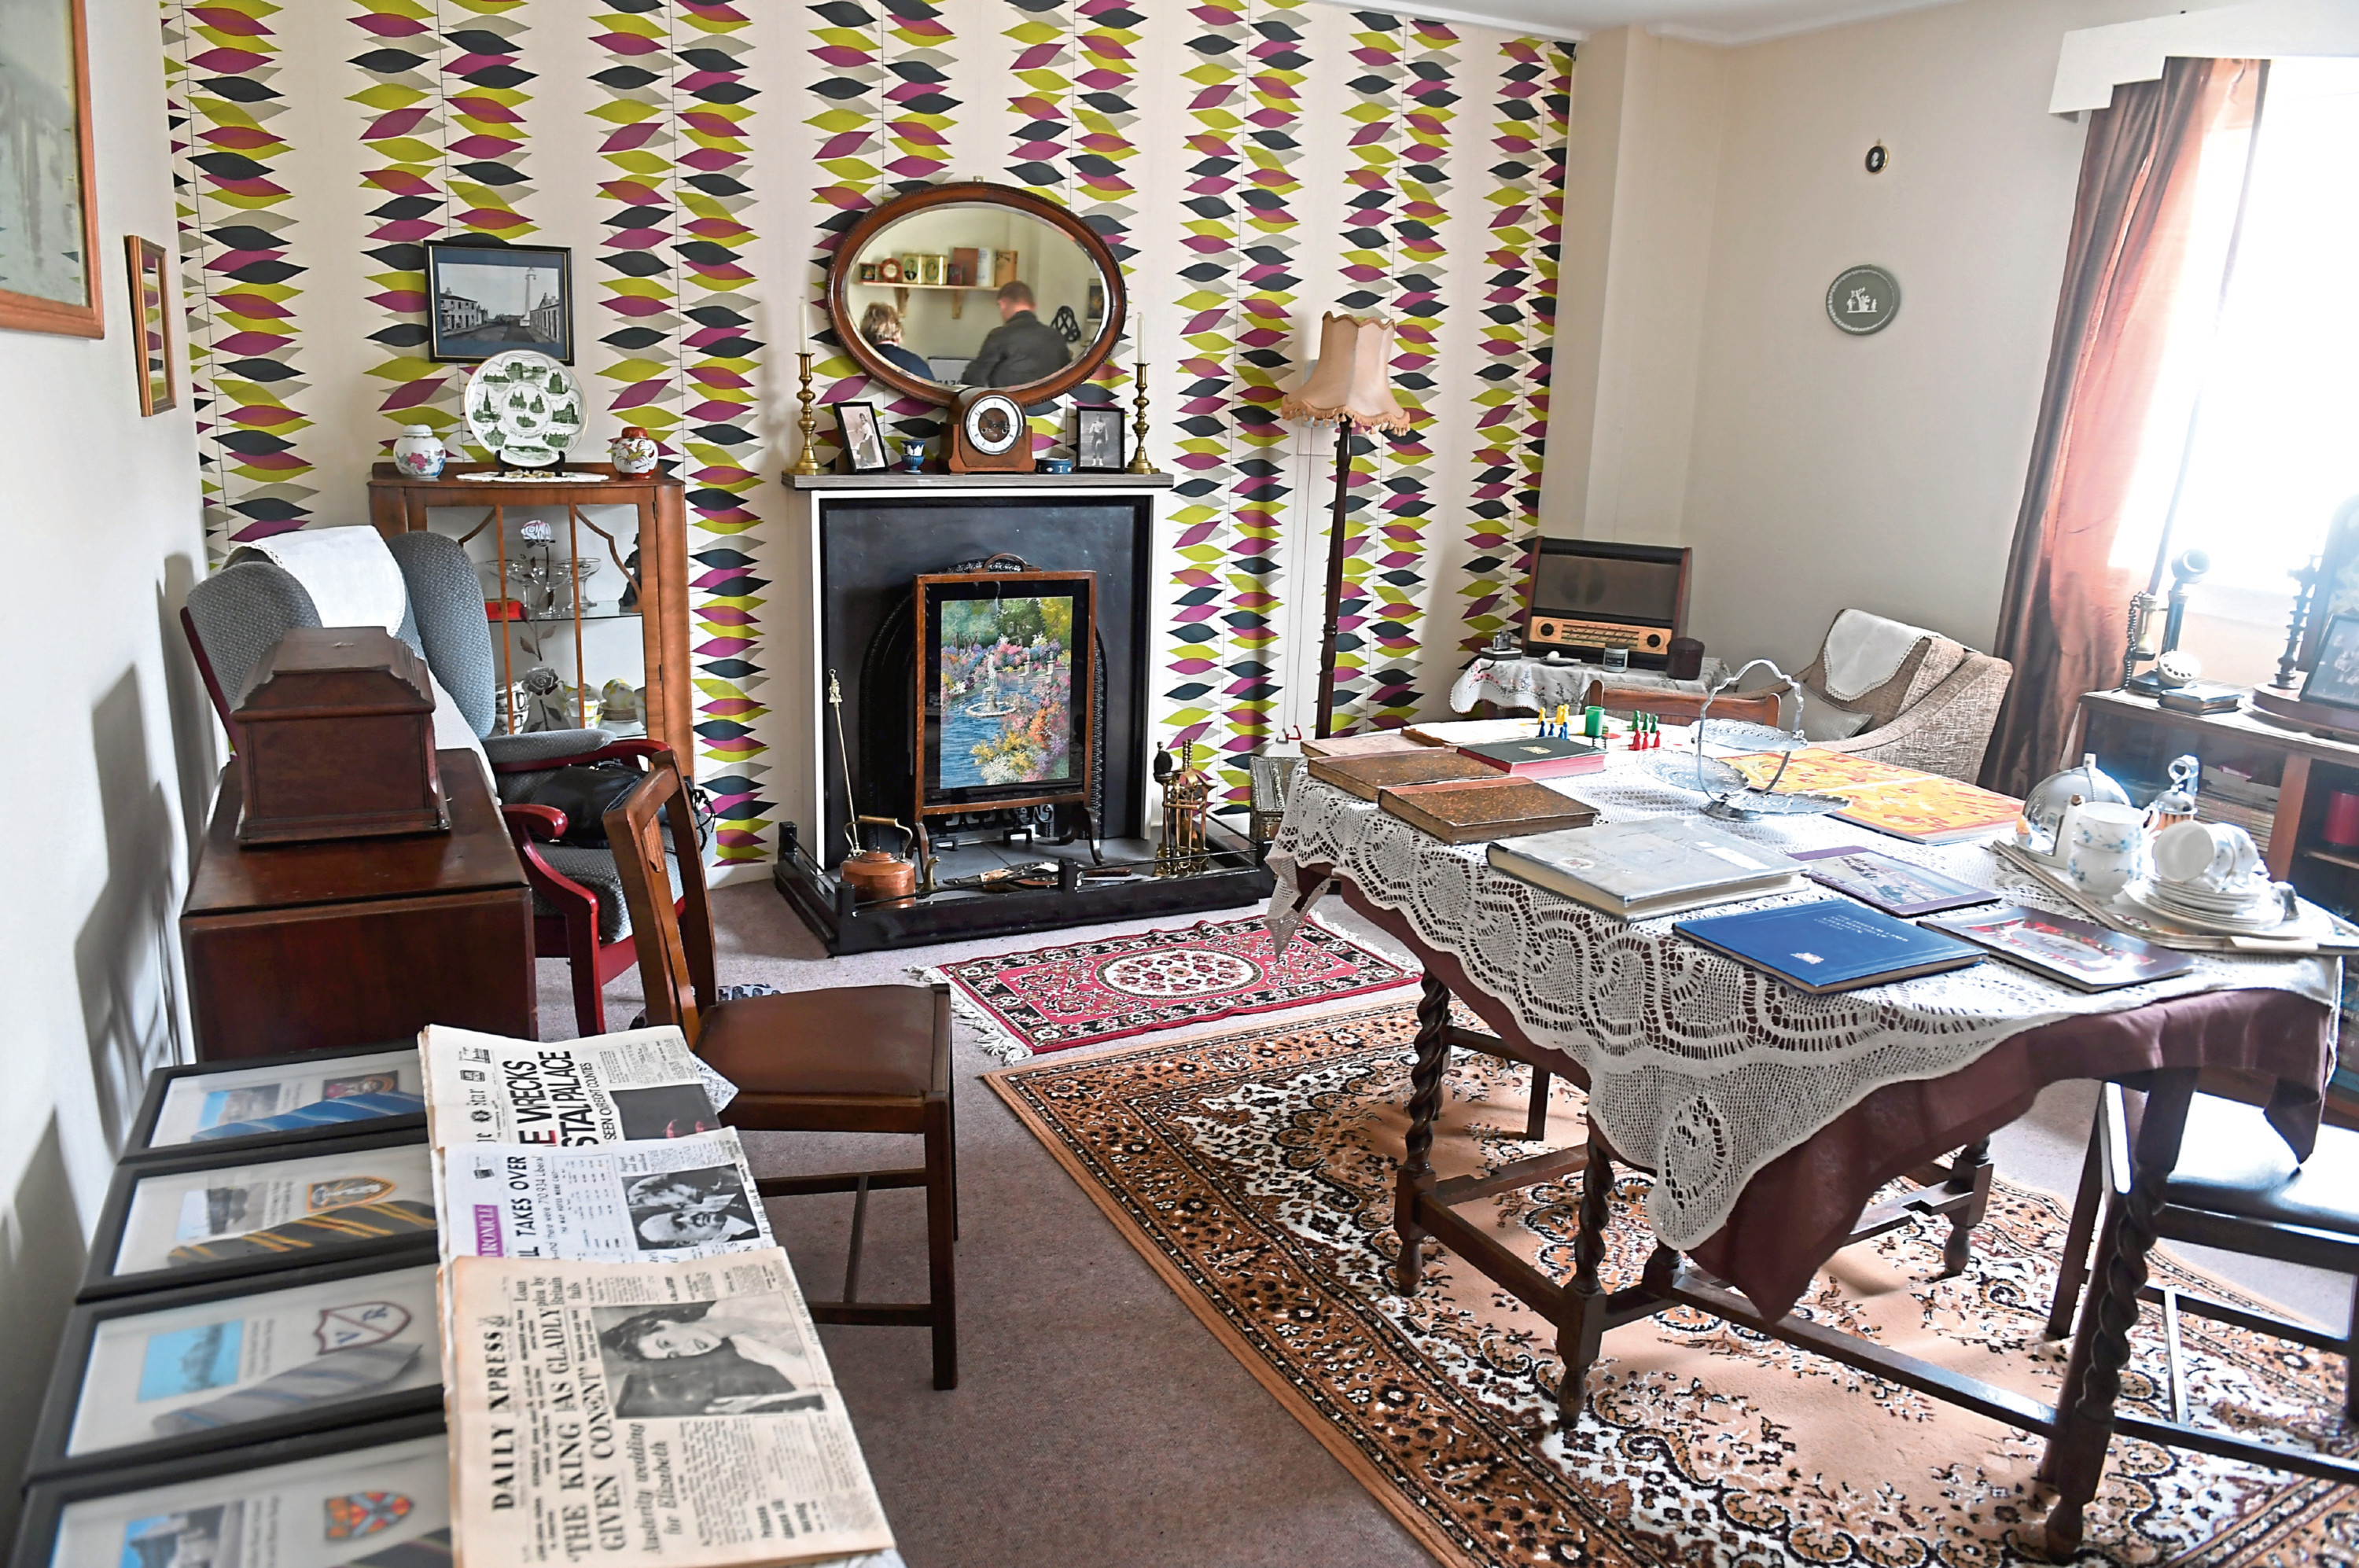 The 1950s heritage room